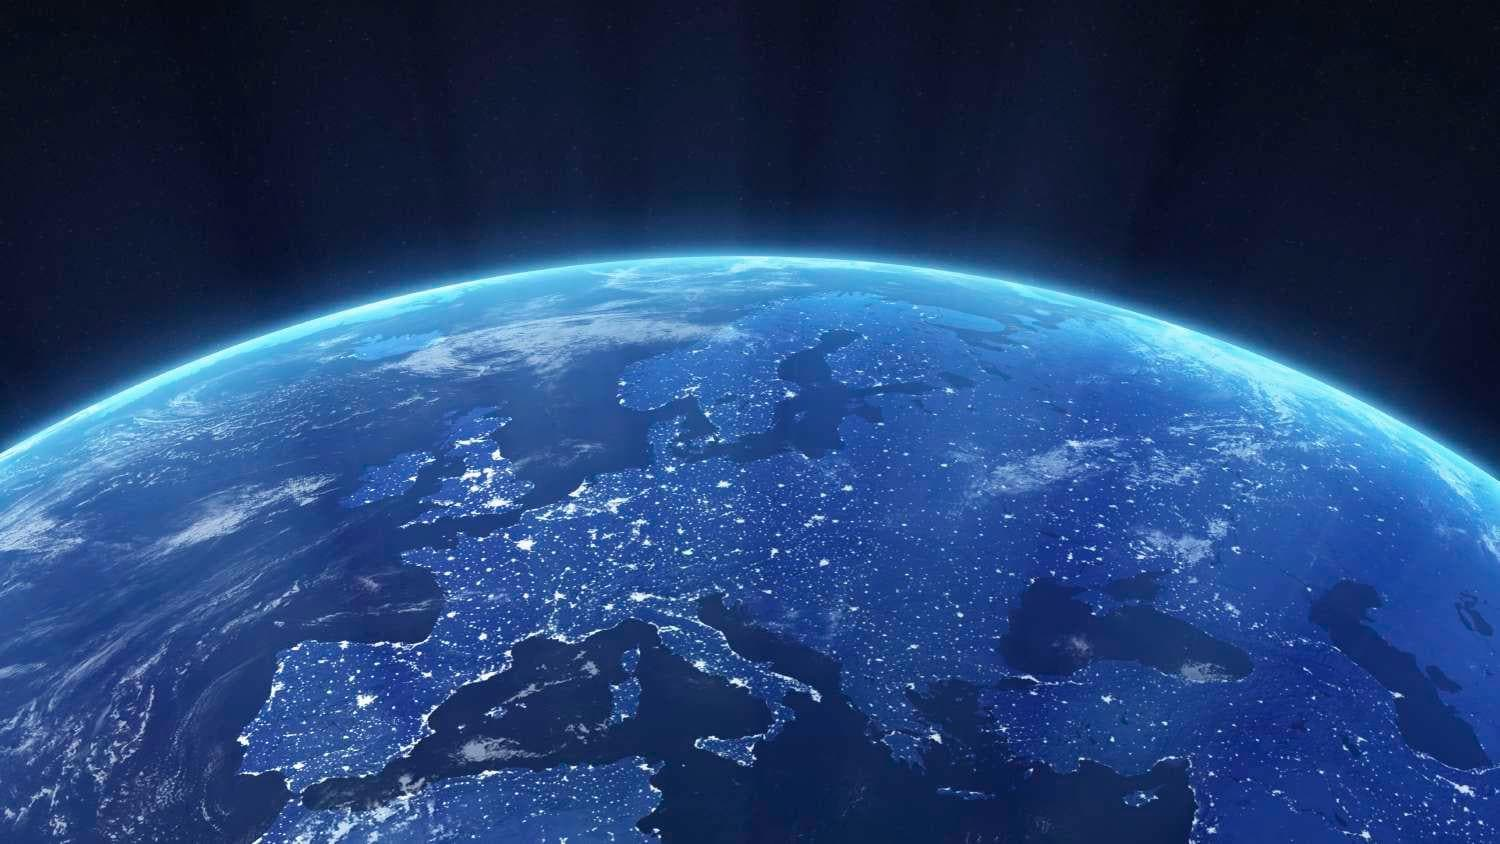 View of Earth from outerspace